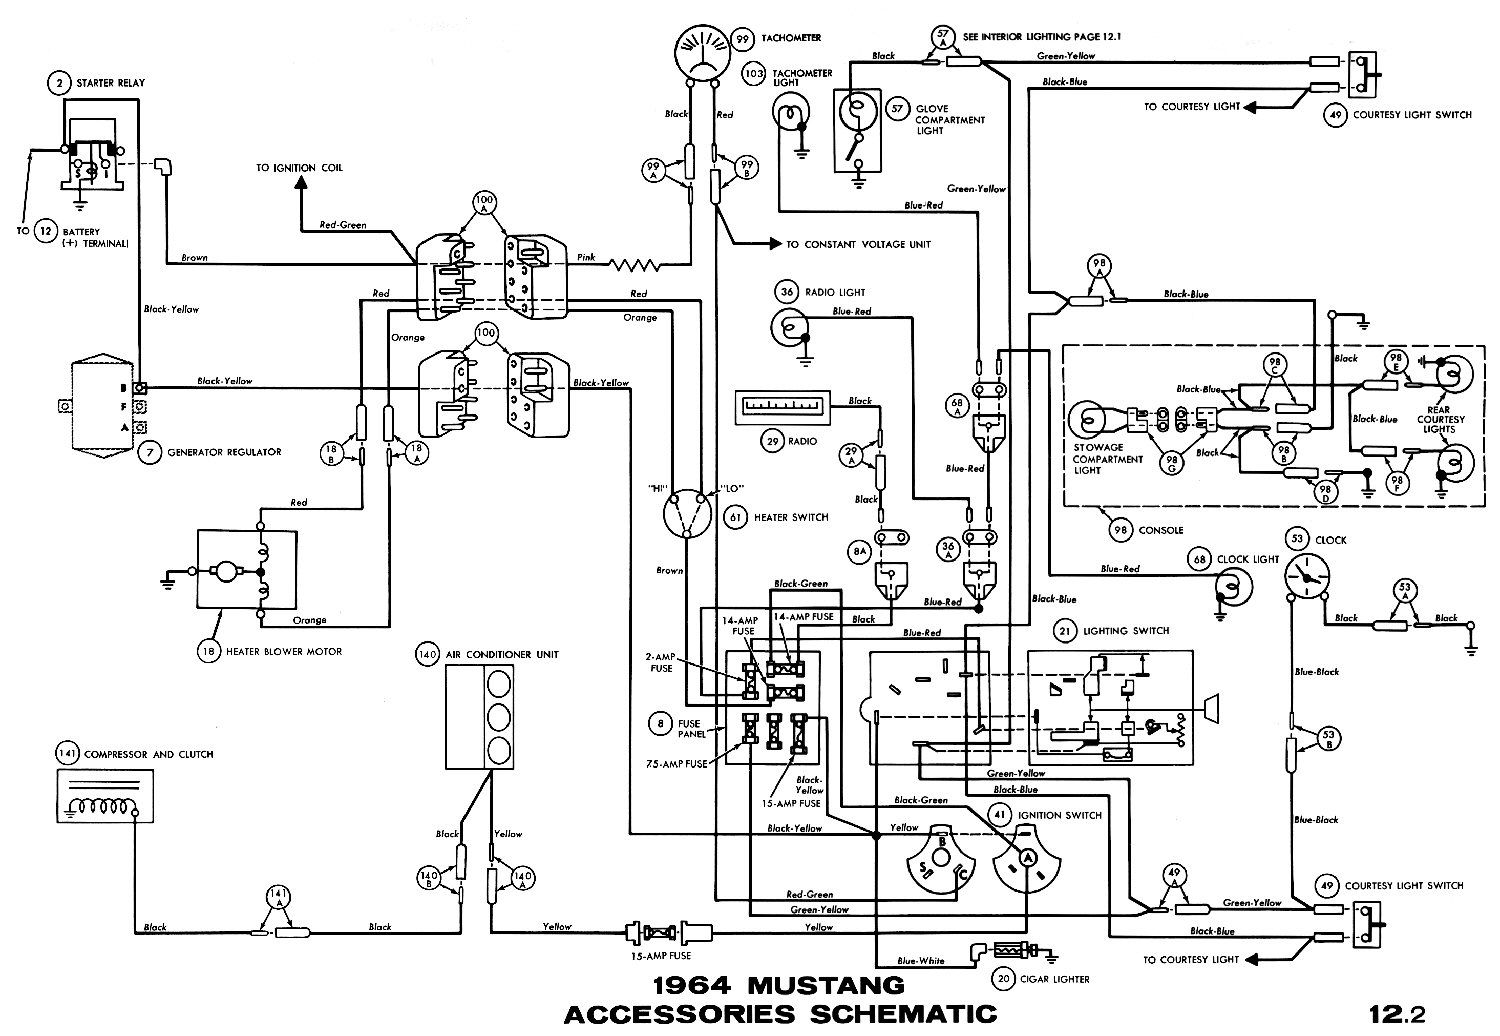 1973 mustang turn signal wiring diagram